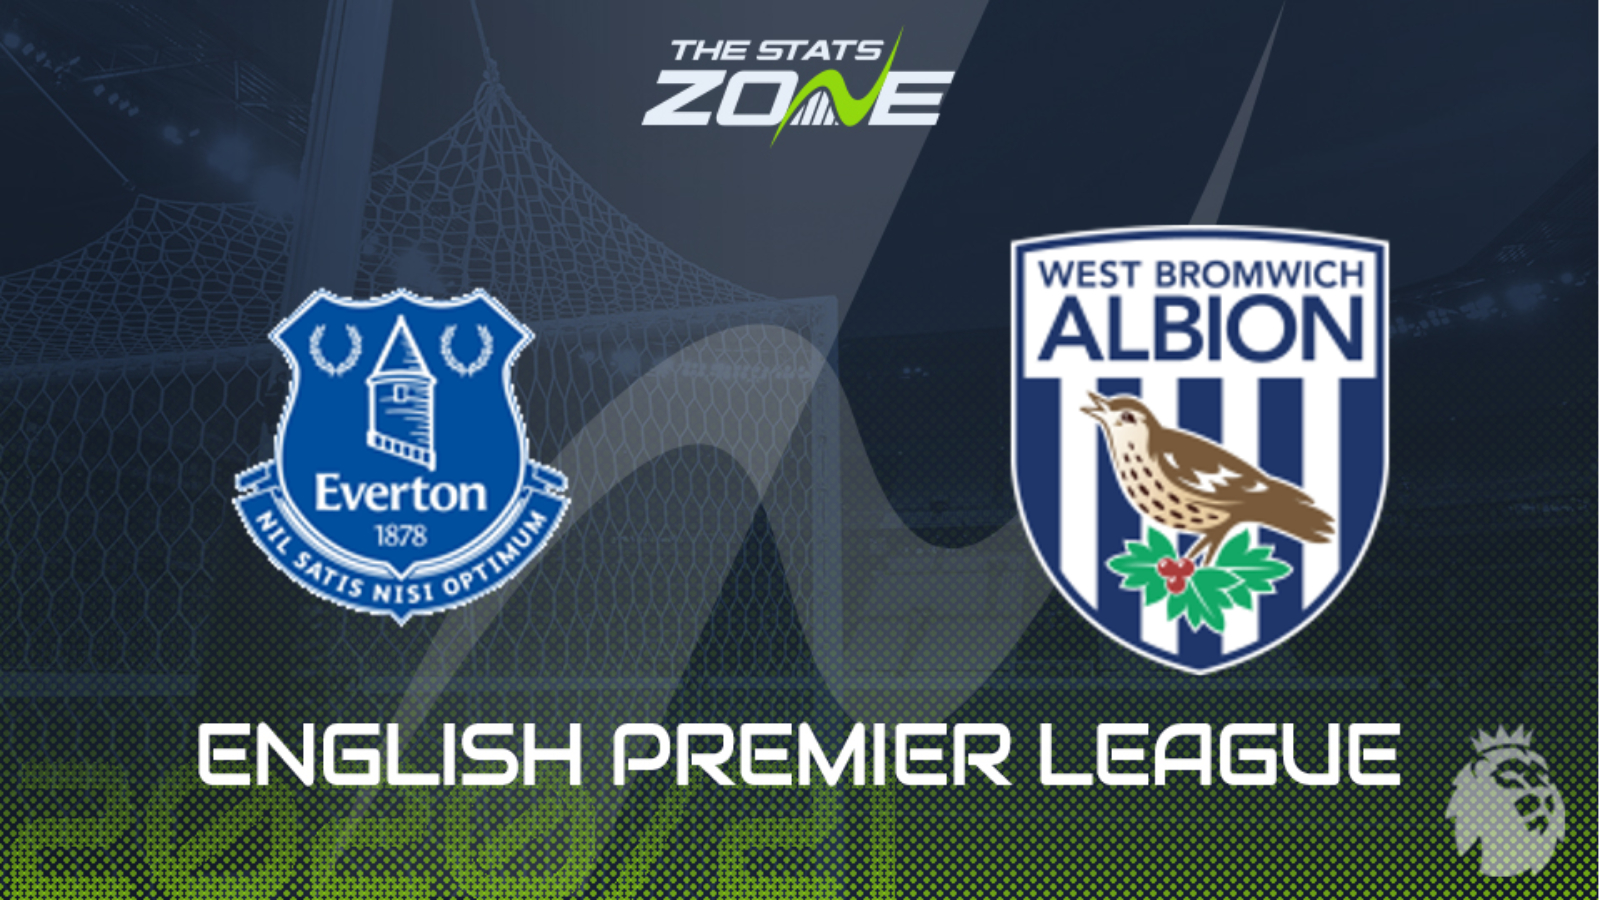 2020 21 Premier League Everton Vs West Brom Preview Prediction The Stats Zone